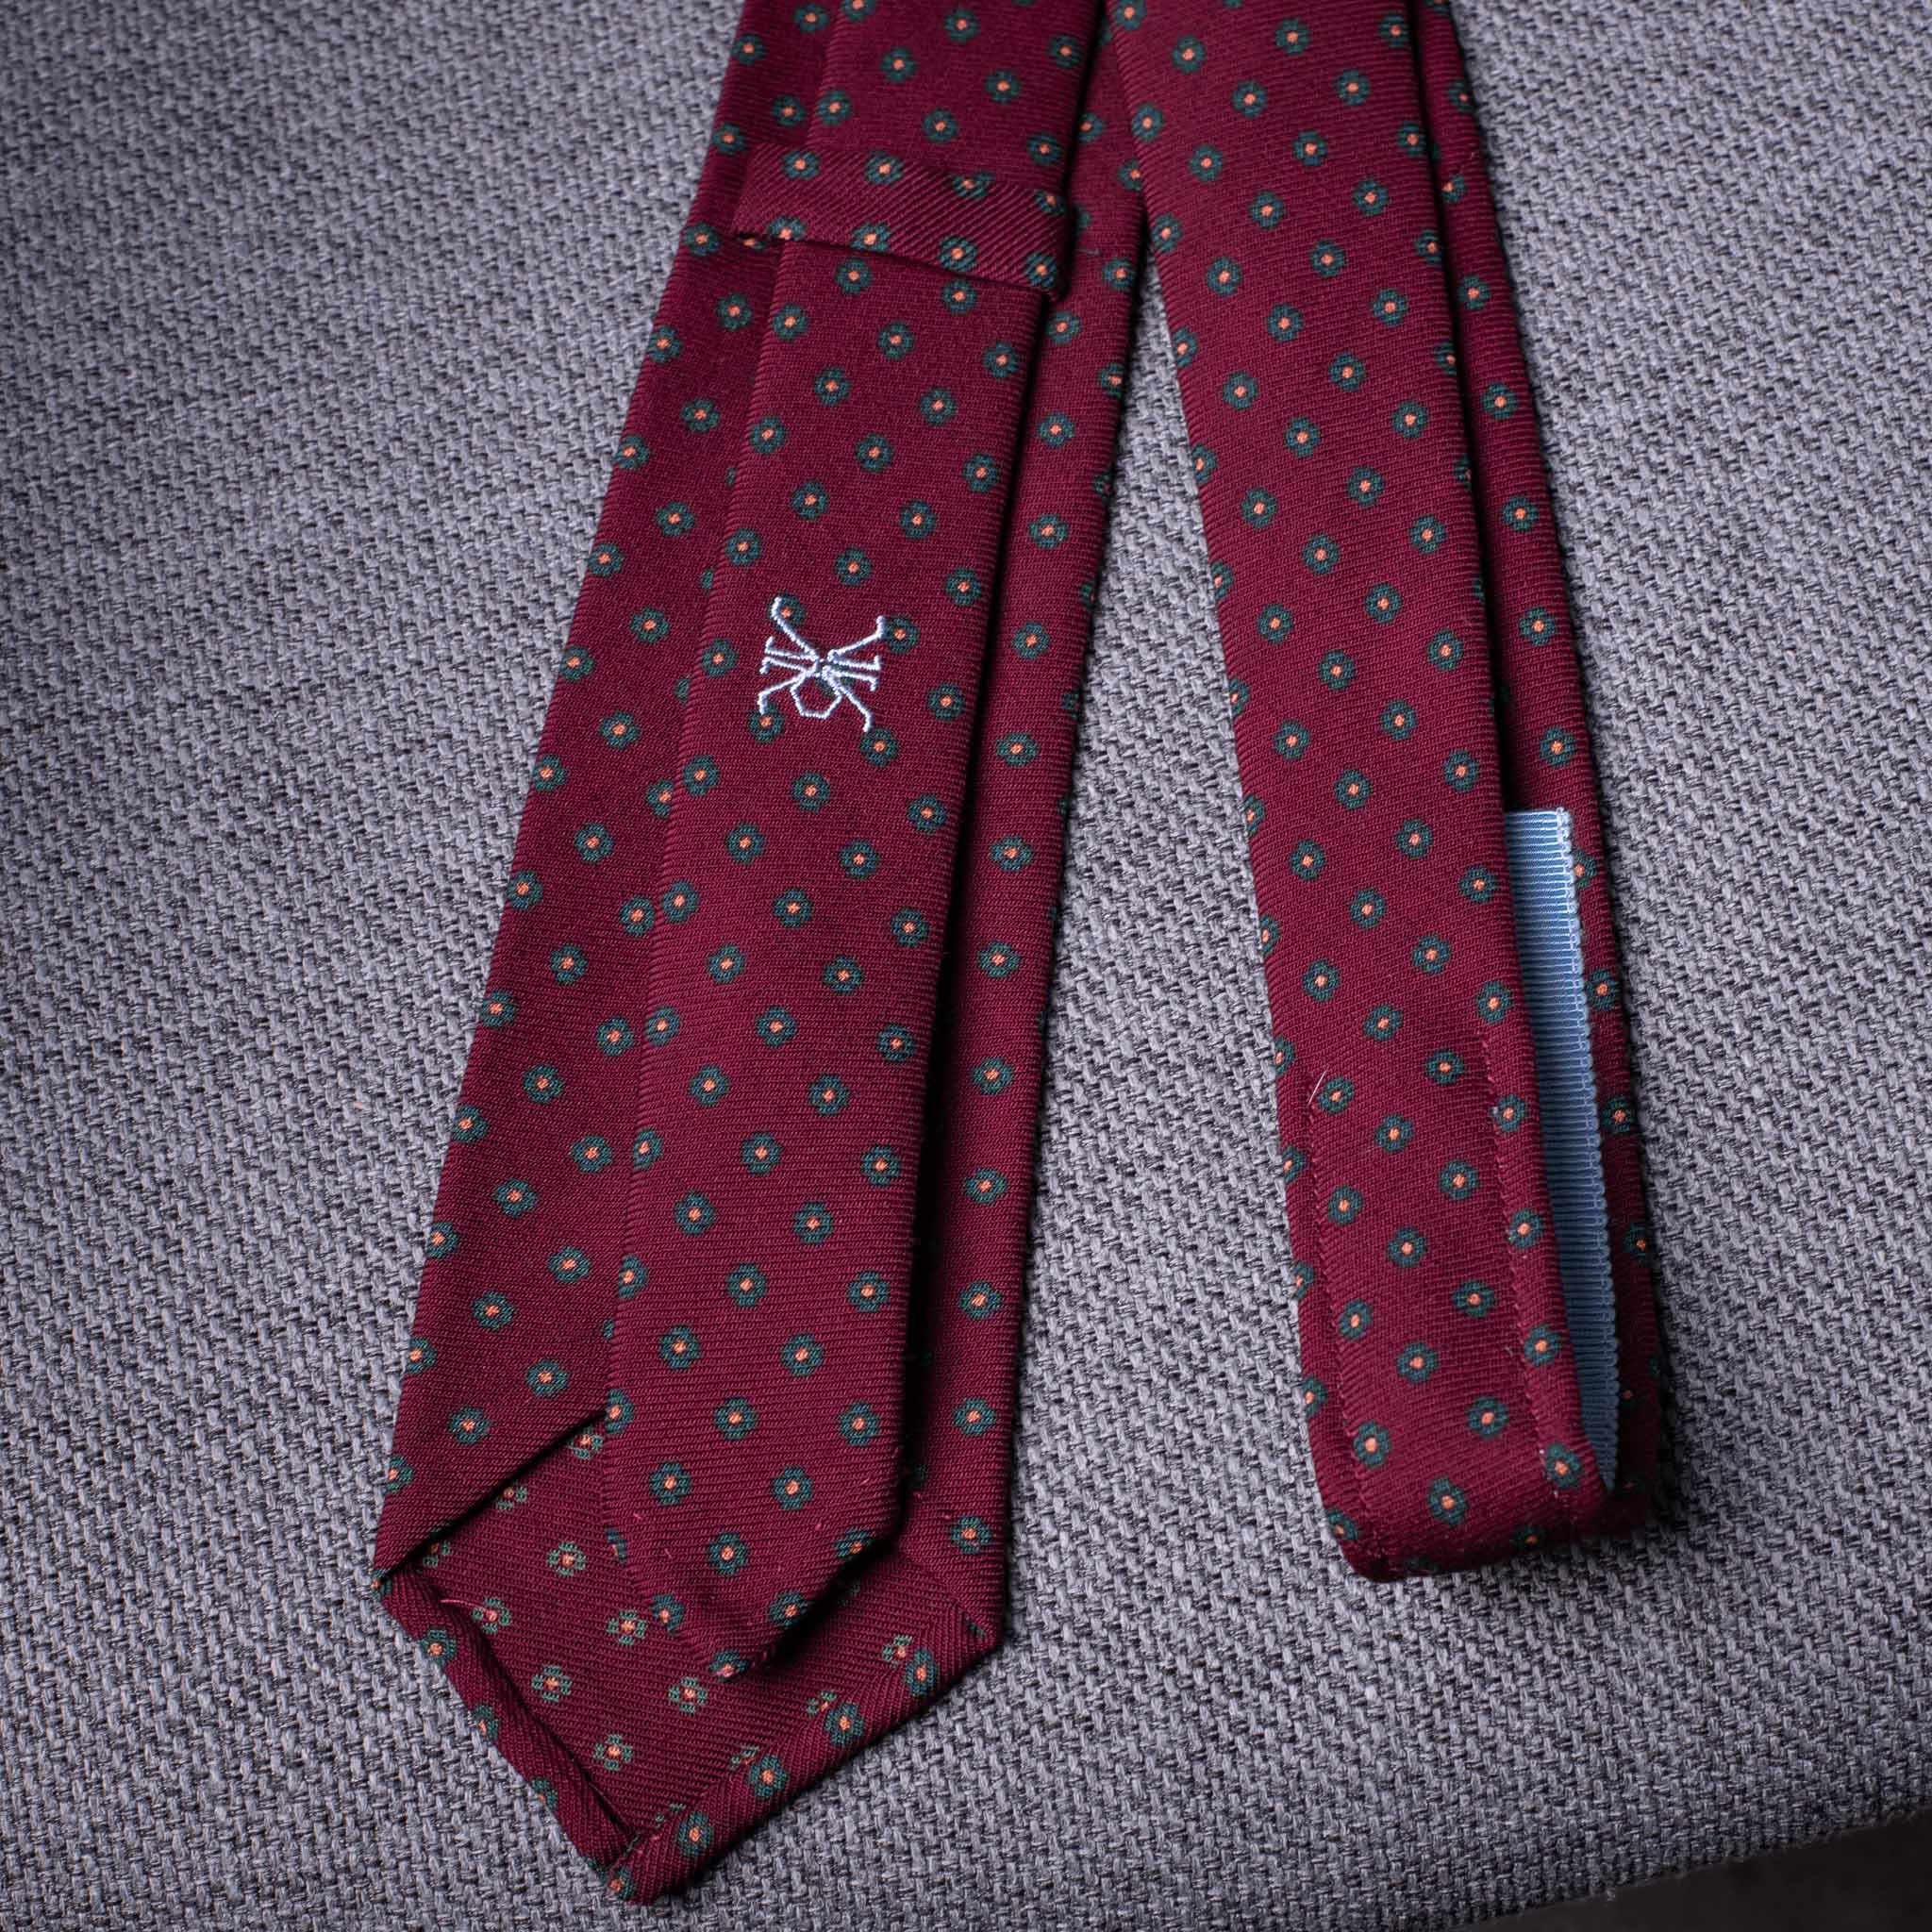 WOOL-0447-Tie-Initials-Corbata-Iniciales-The-Seelk-4